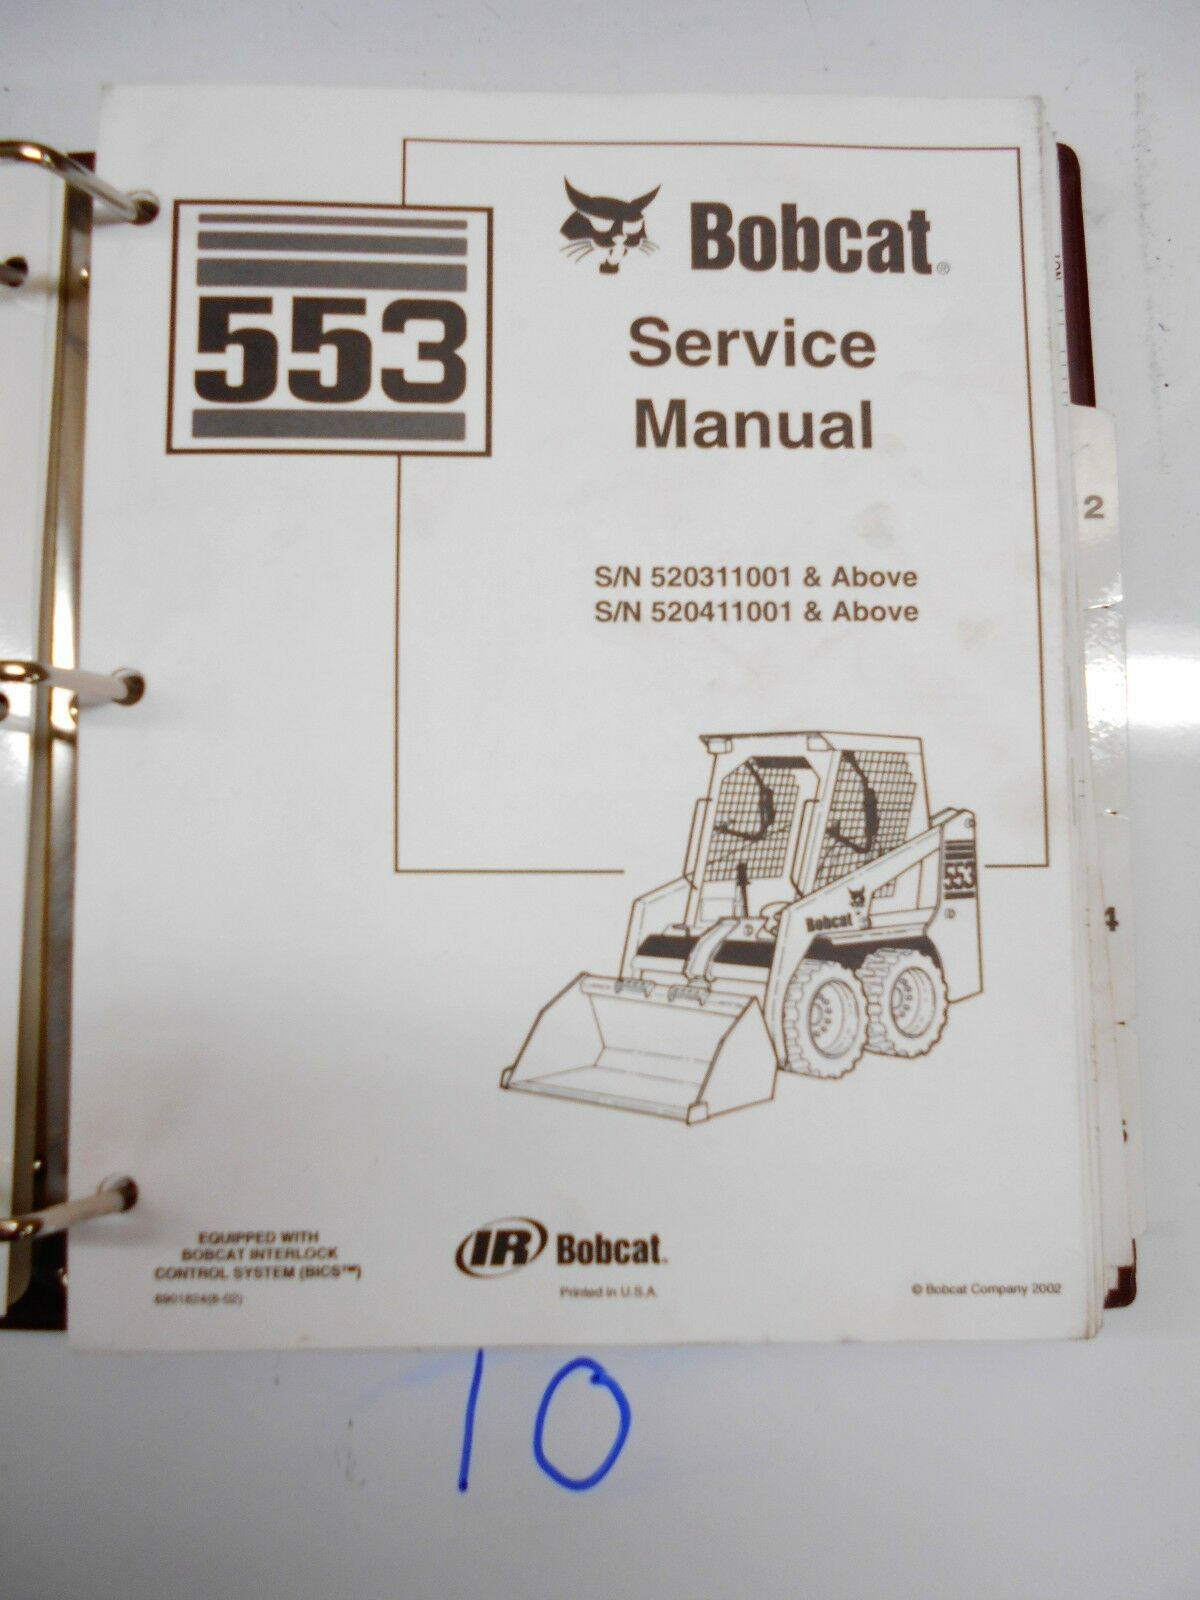 Bobcat 553 Skid Steer Loader Service Manual 1 of 2Only 1 available See More